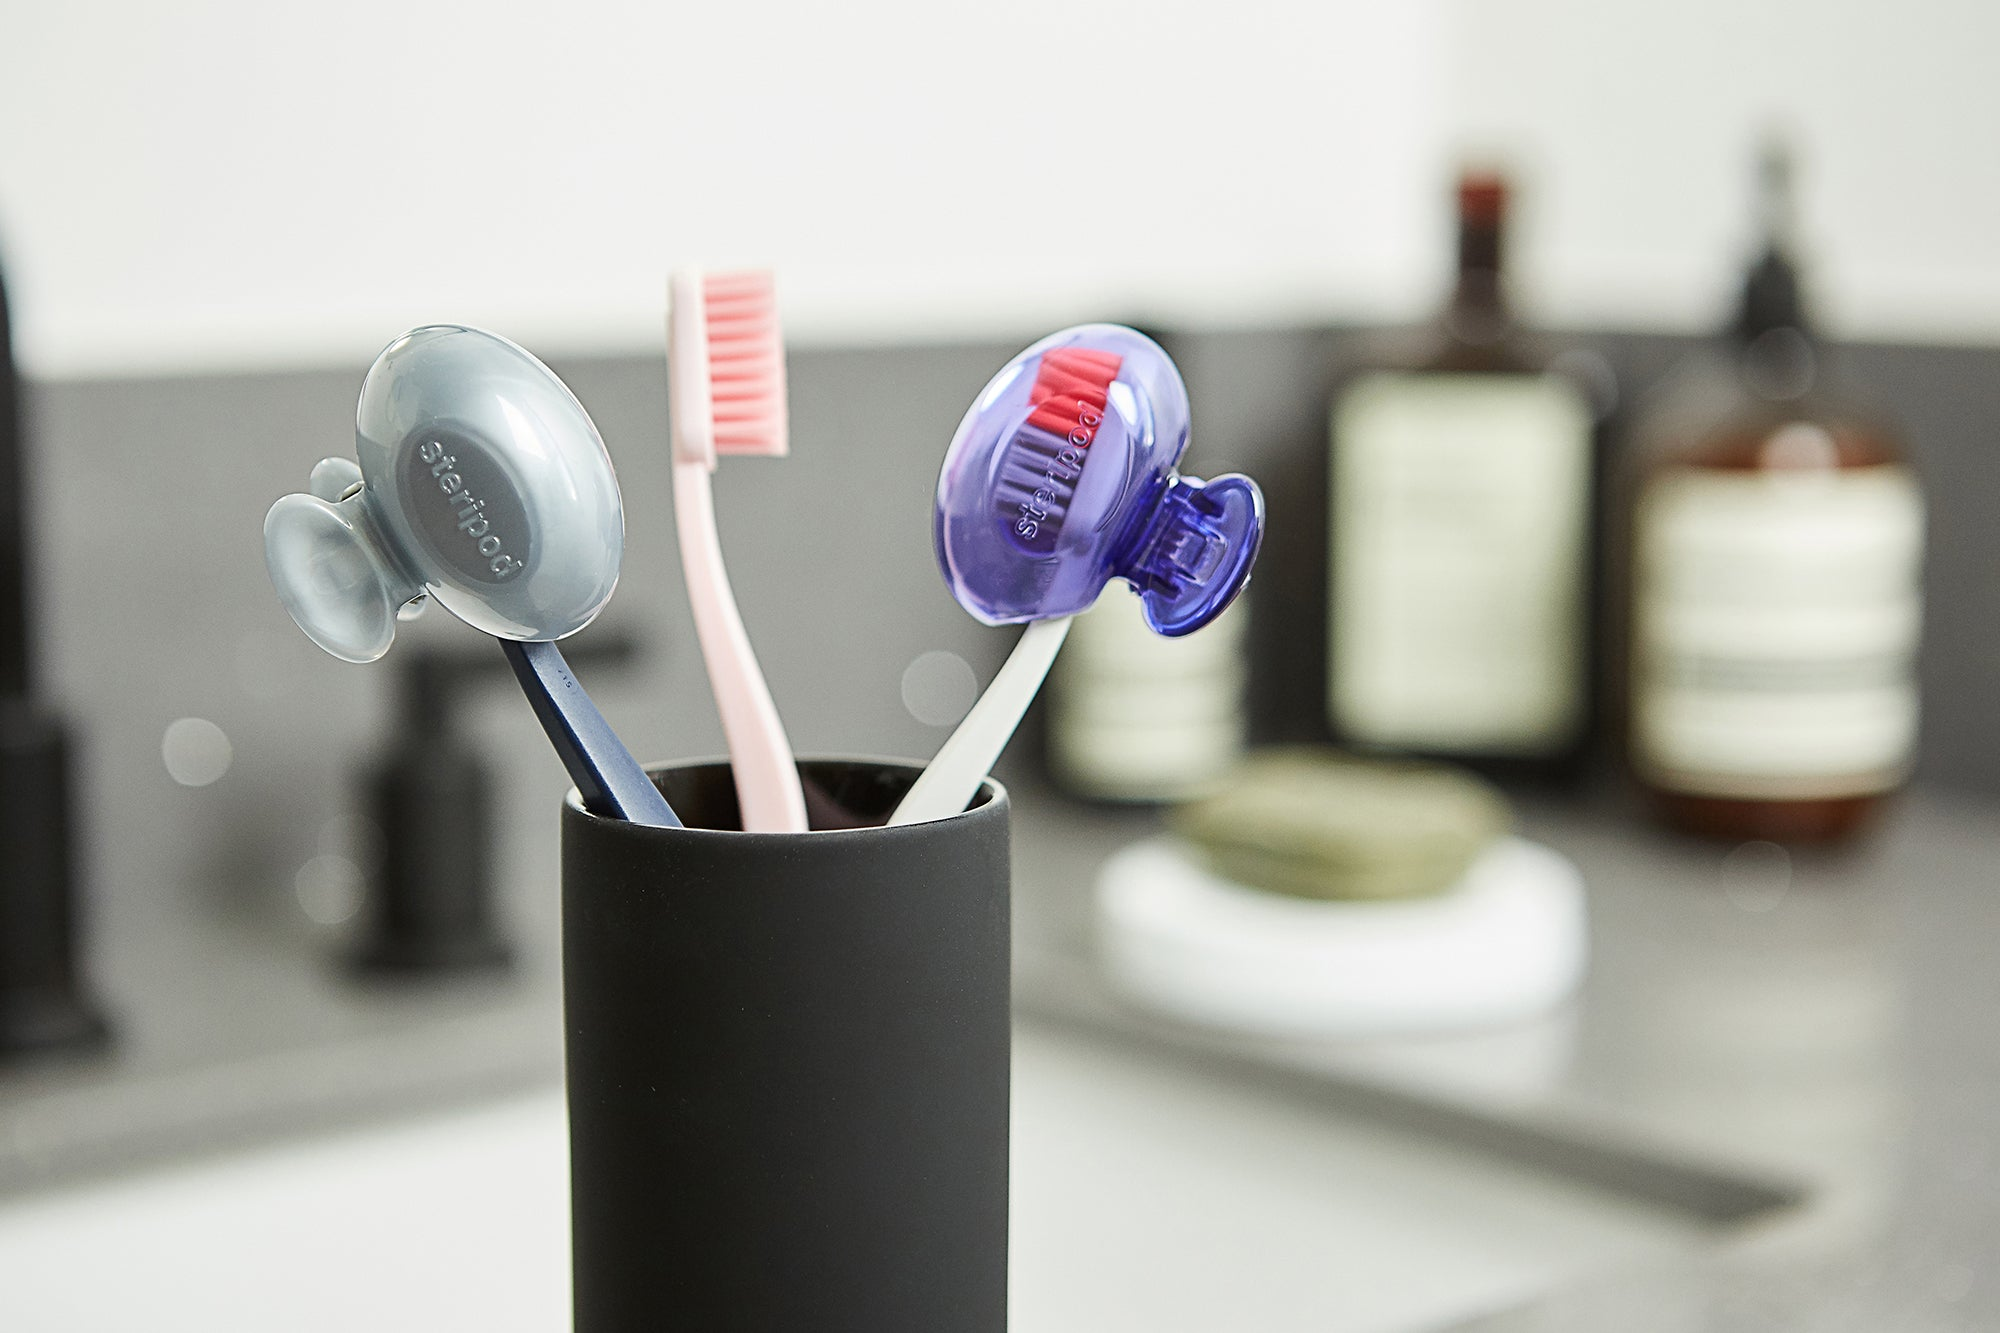 Exclusive Double Toothbrush Protectors  (Set of 2 Pods)